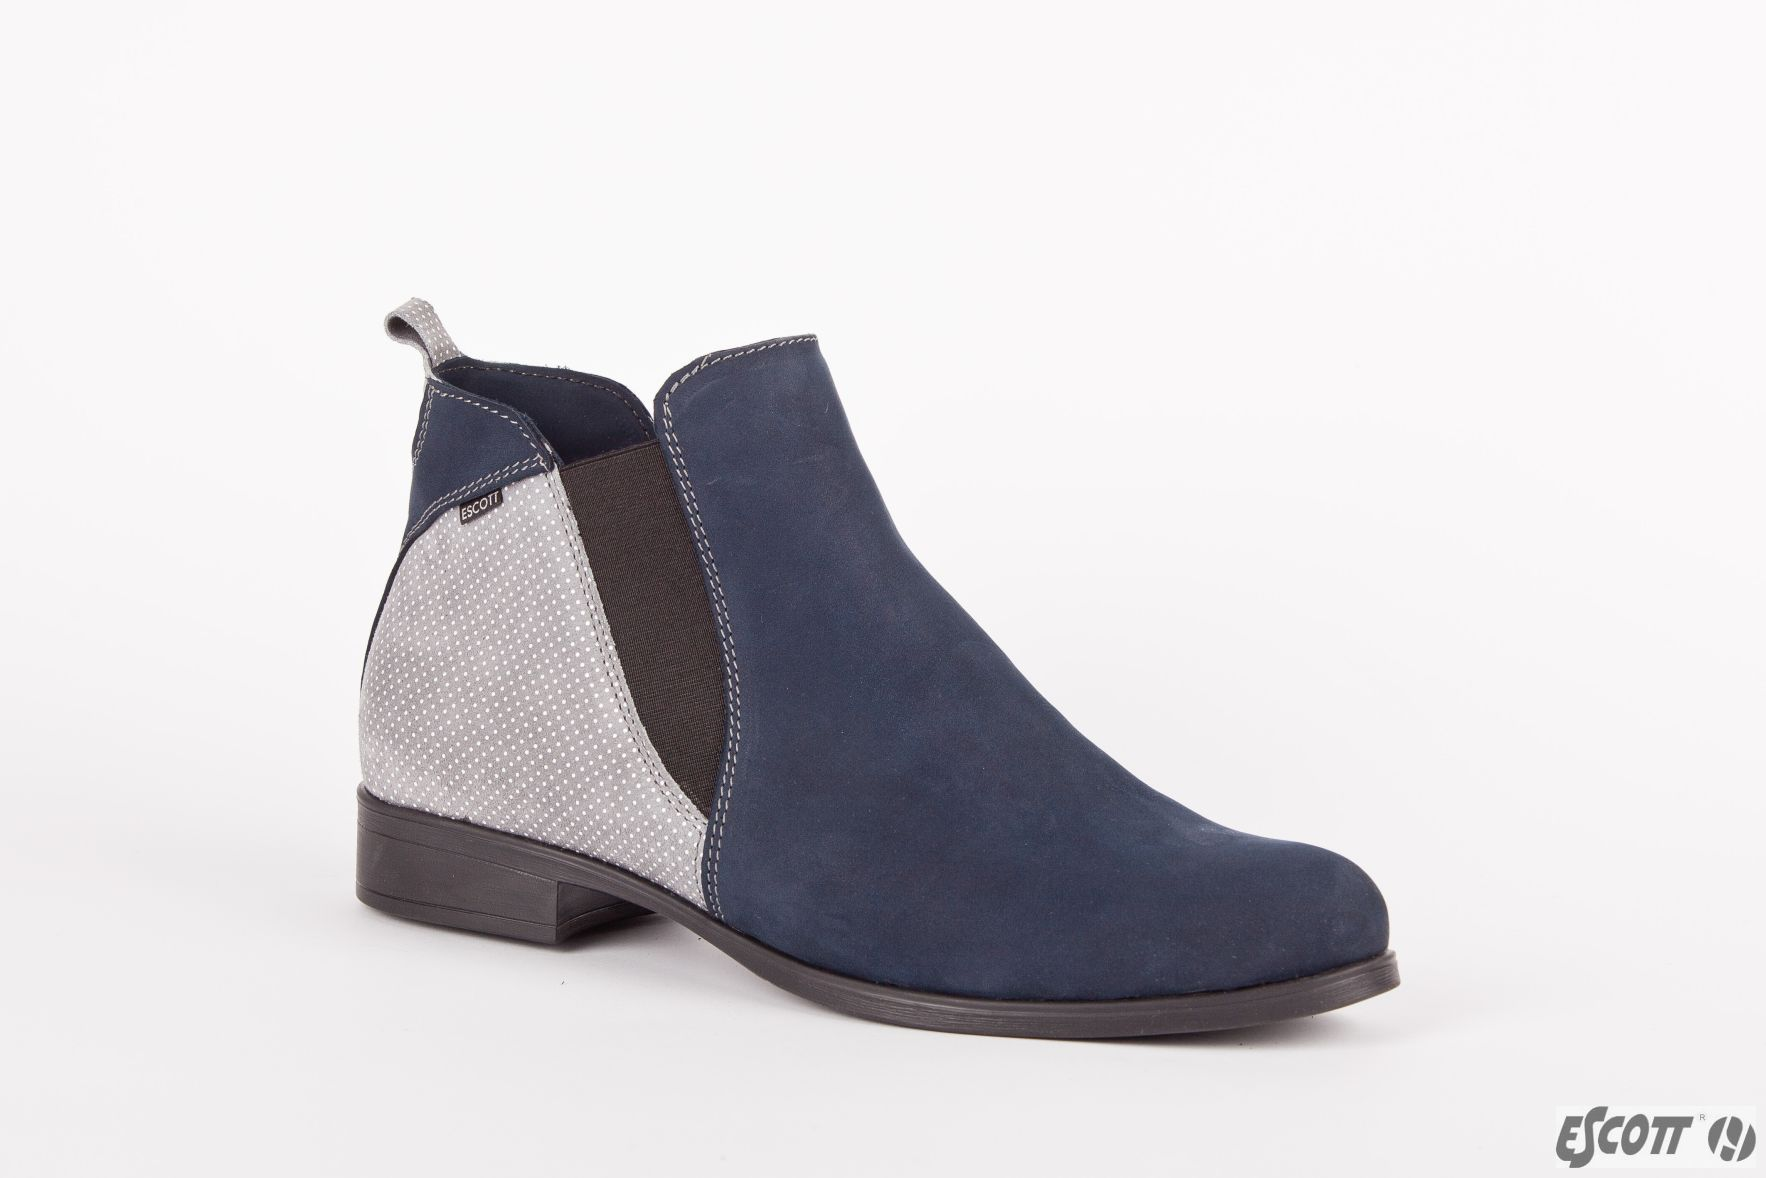 Botki Mlodziezowe Shoes Ankle Boot Boots